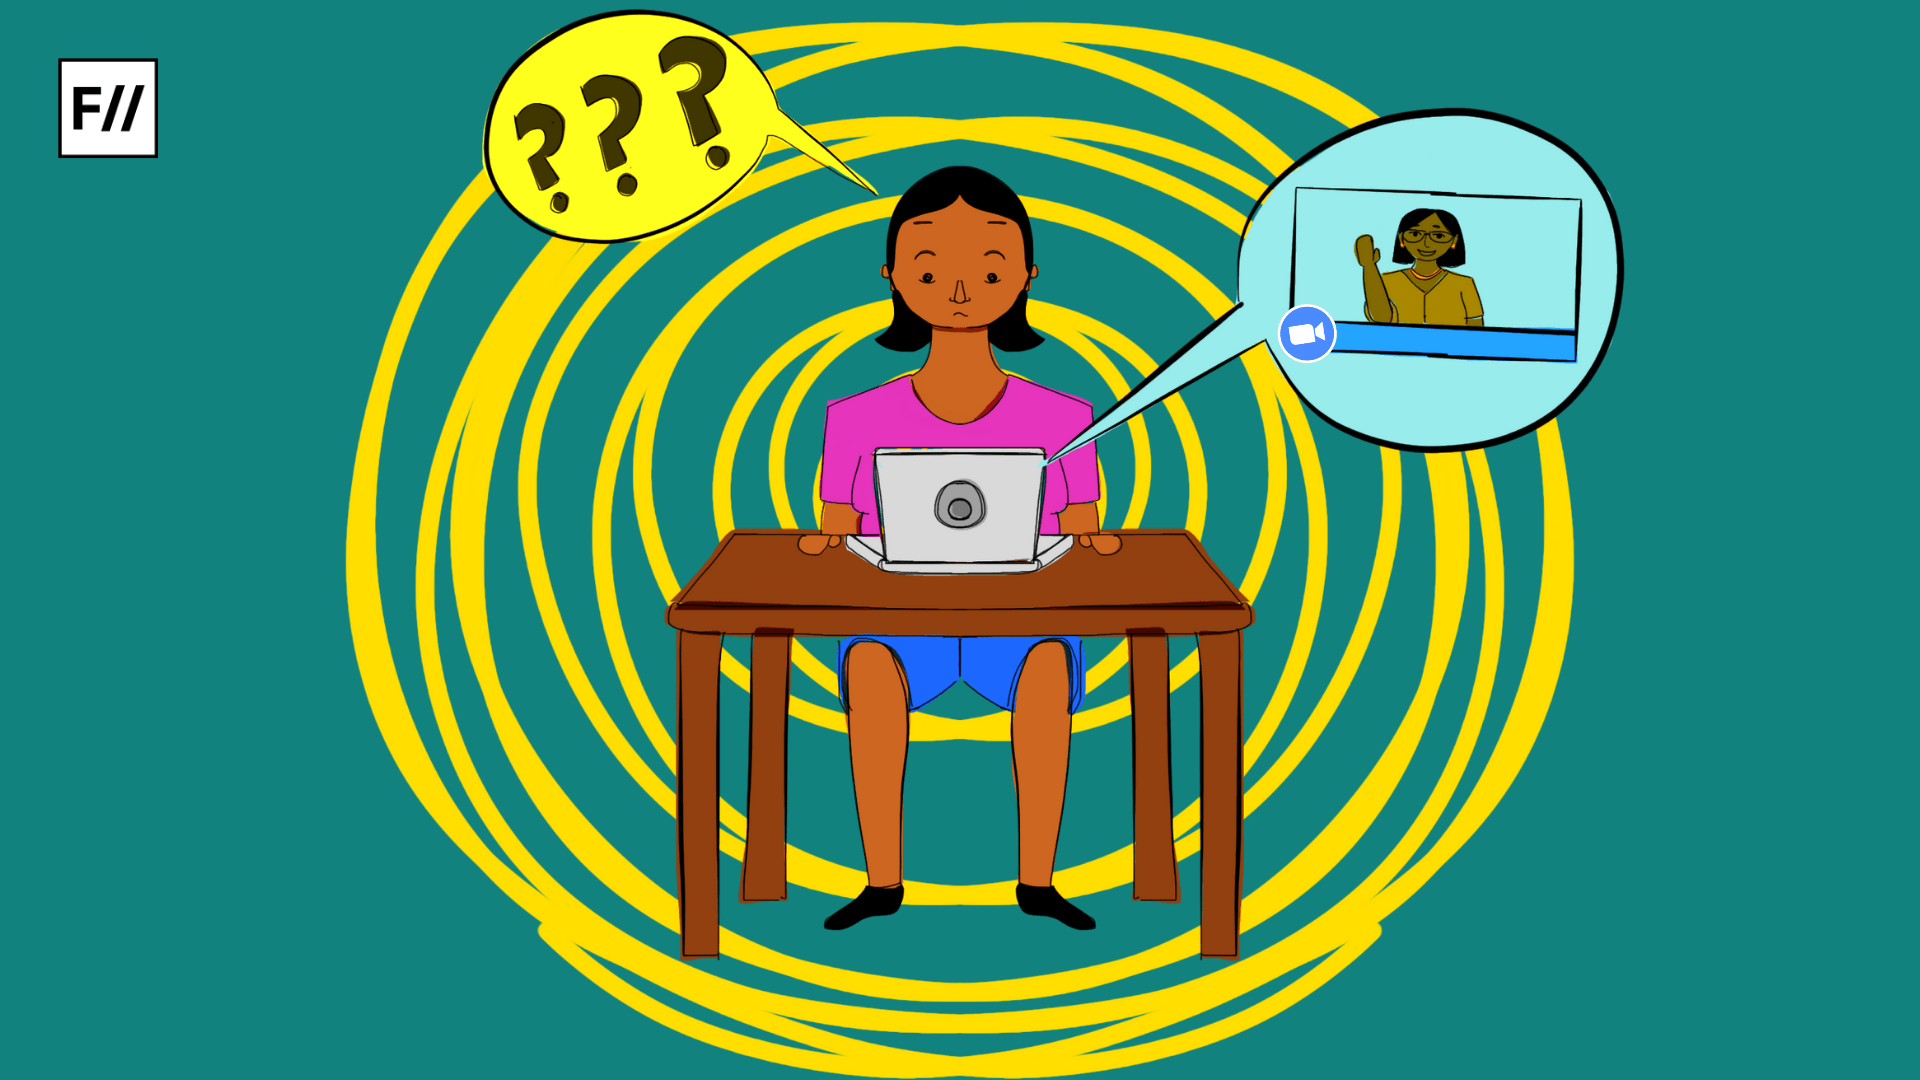 Online Therapy: The Struggles Of Communicating Distress Without Physical Presence